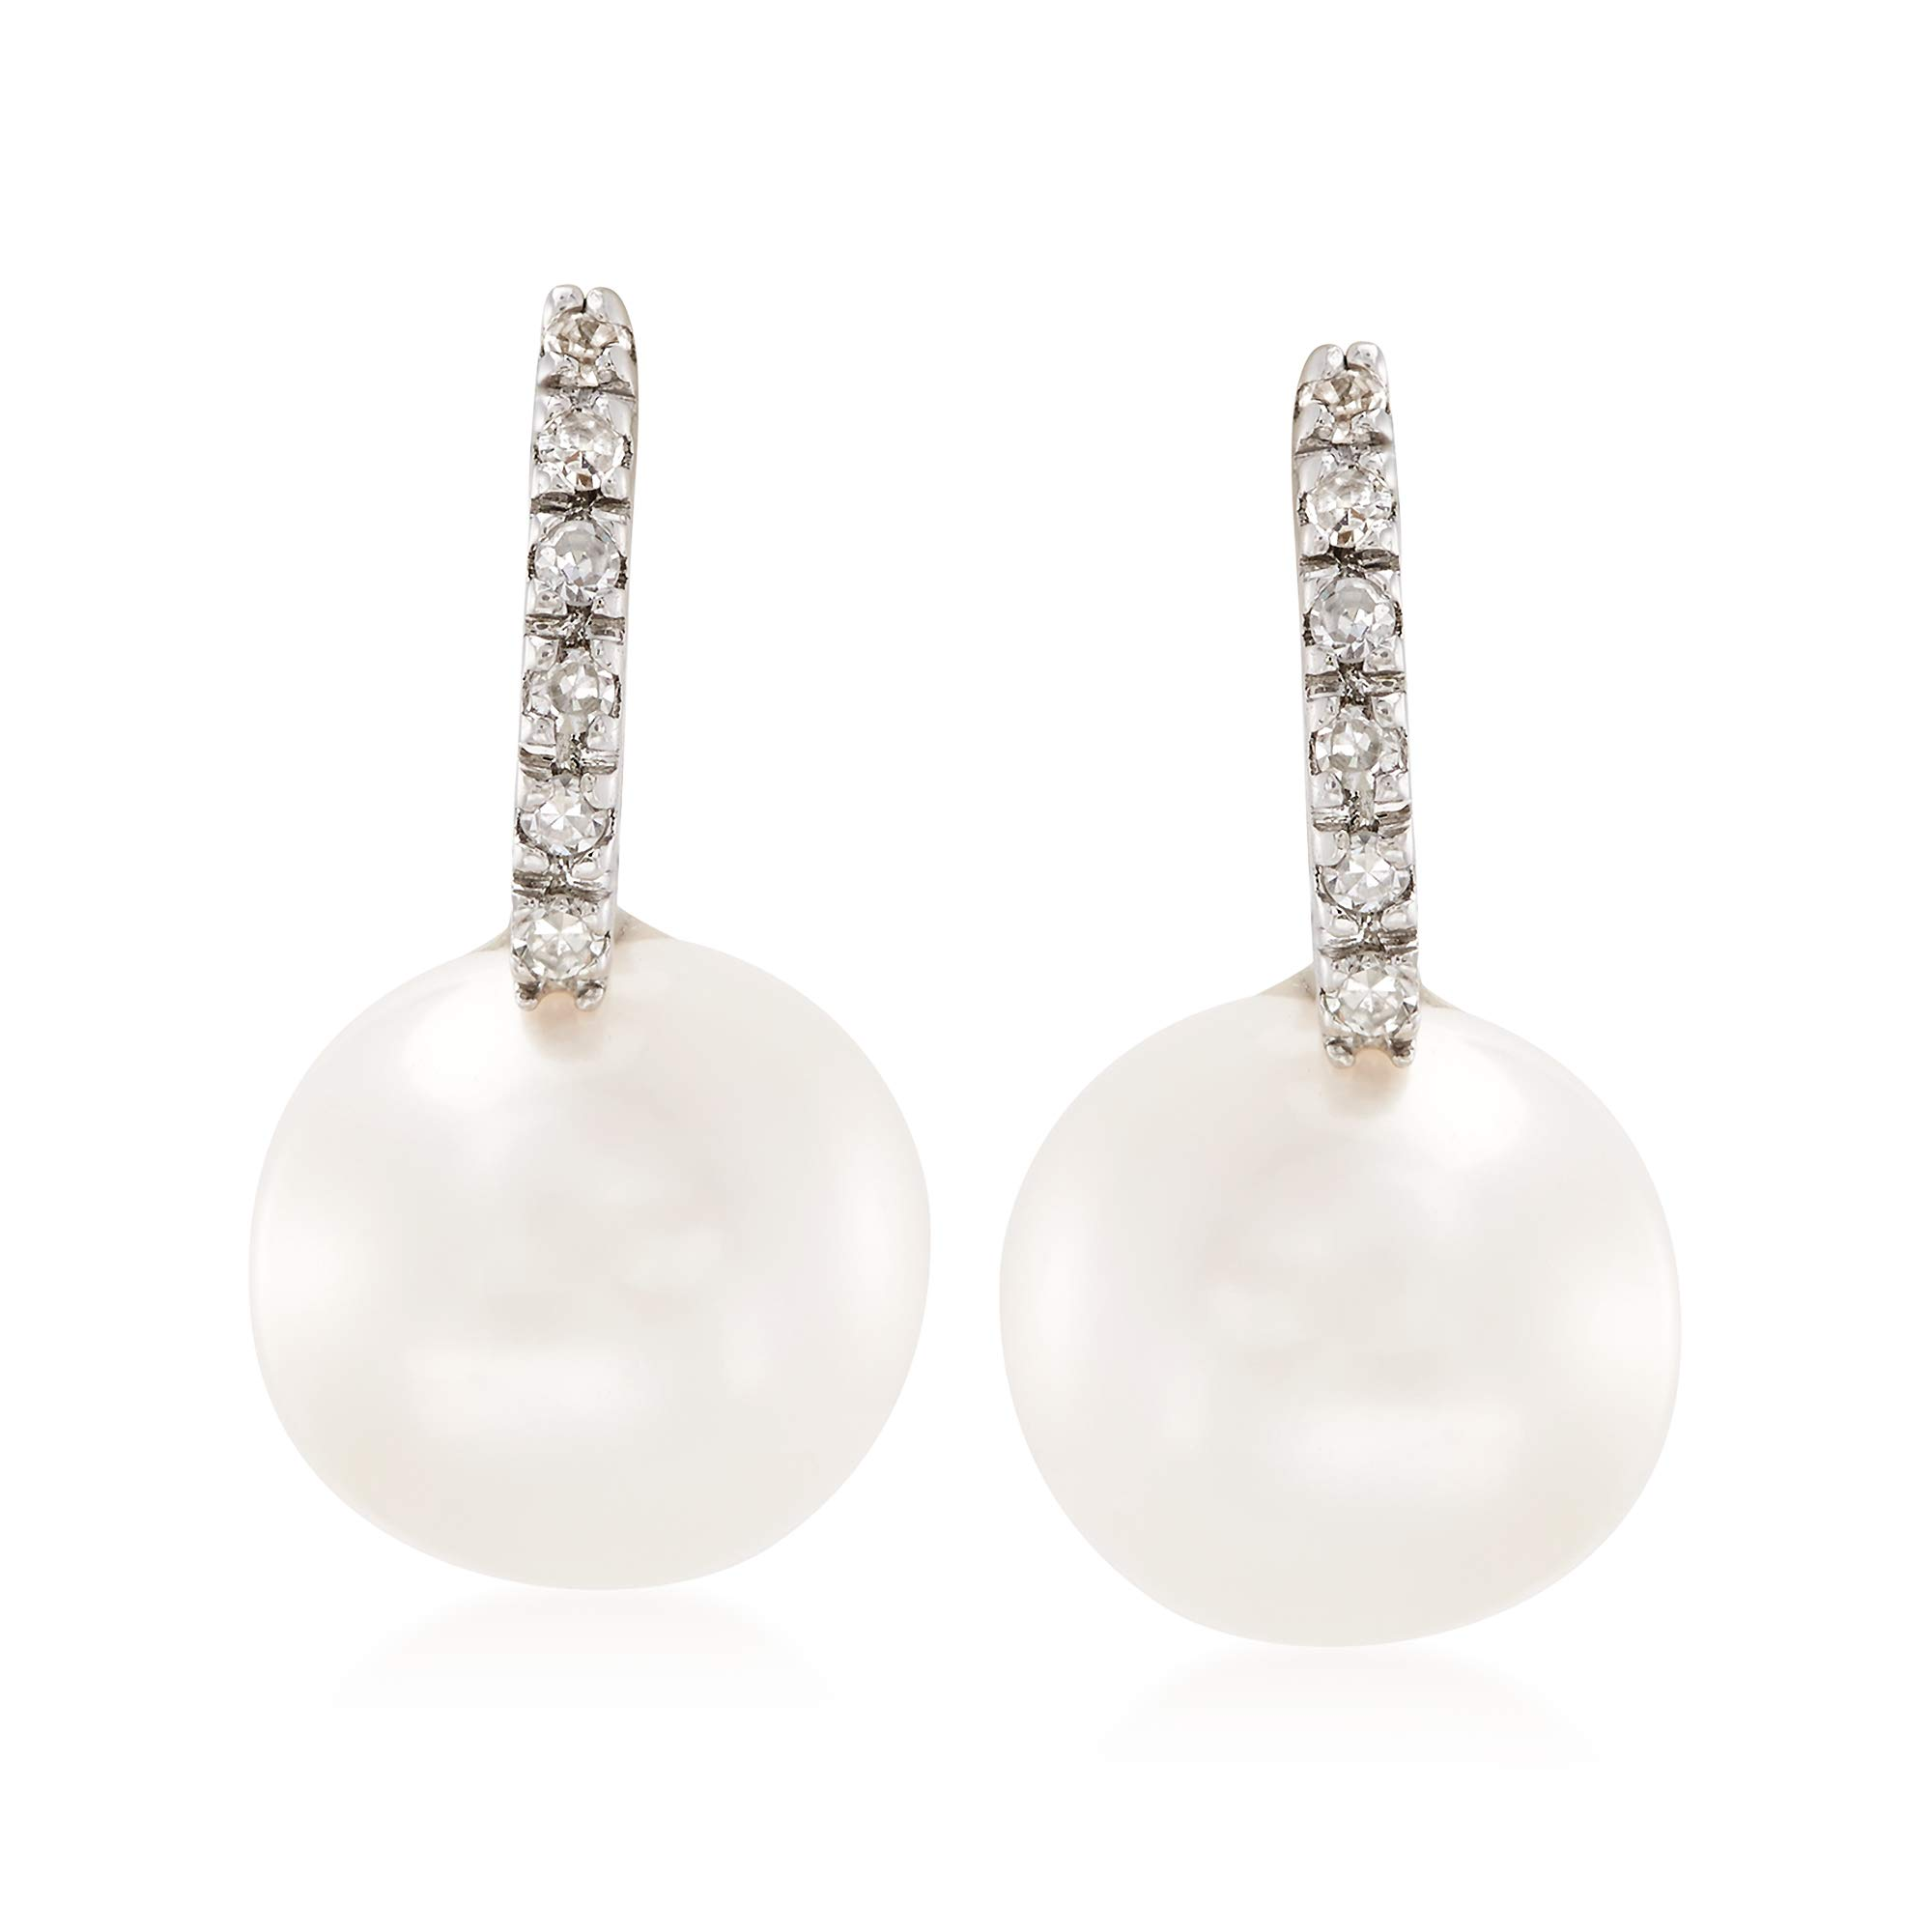 Ross-Simons 8mm Cultured Pearl Earrings With Diamond Accents in 14kt White Gold by Ross-Simons (Image #1)